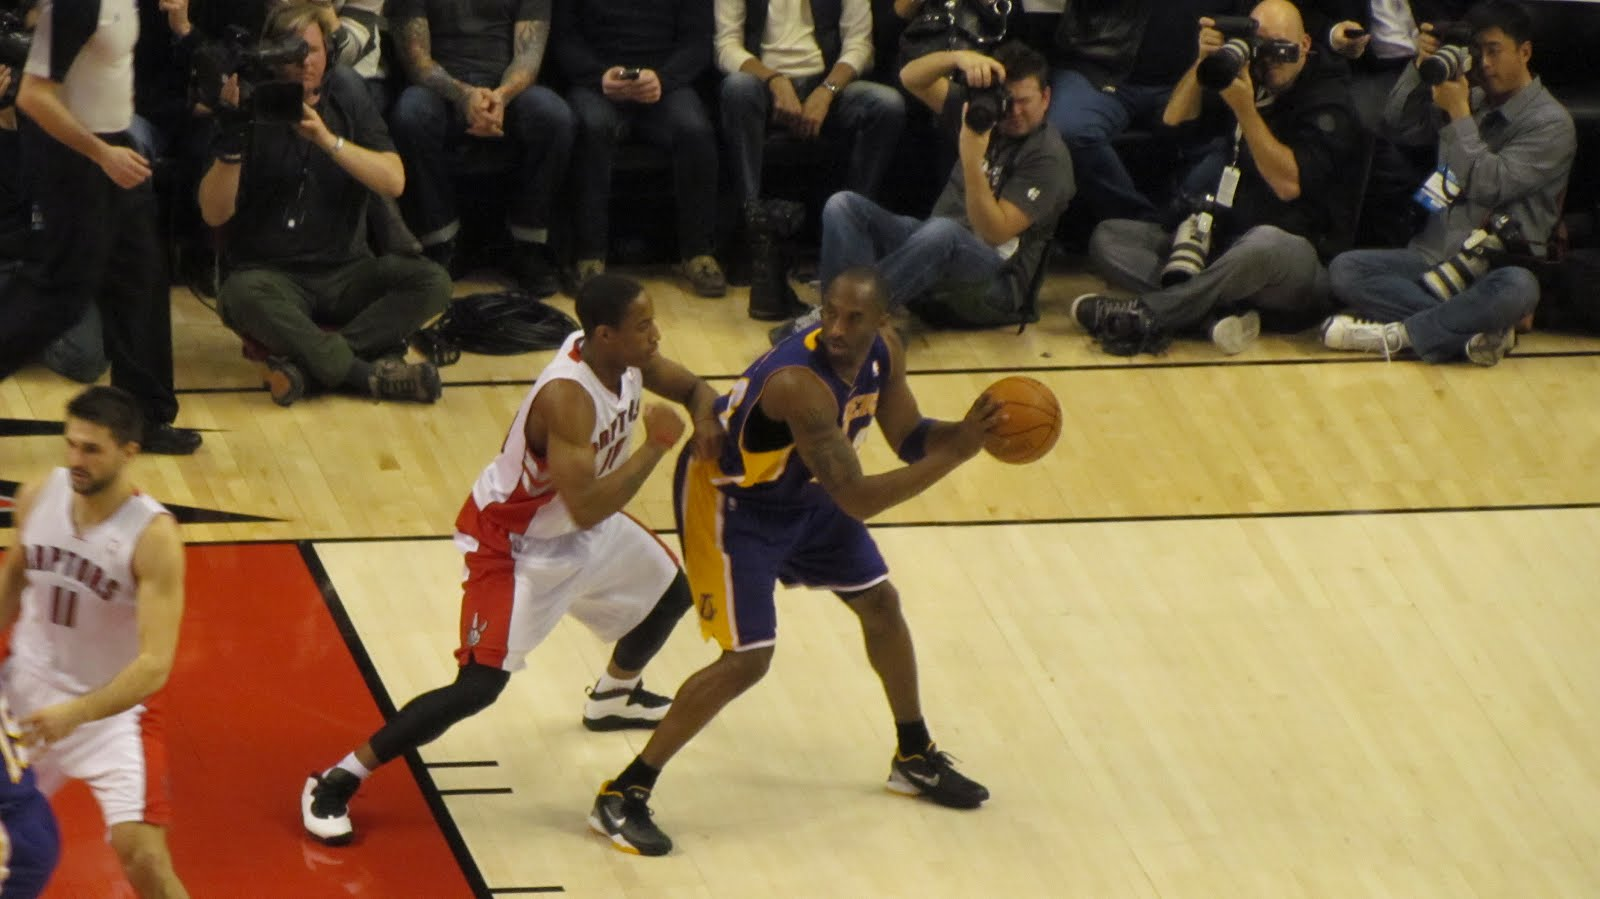 Lakers Vs Raptors Detail: The World Of Gord: Raptors Vs Lakers At The ACC